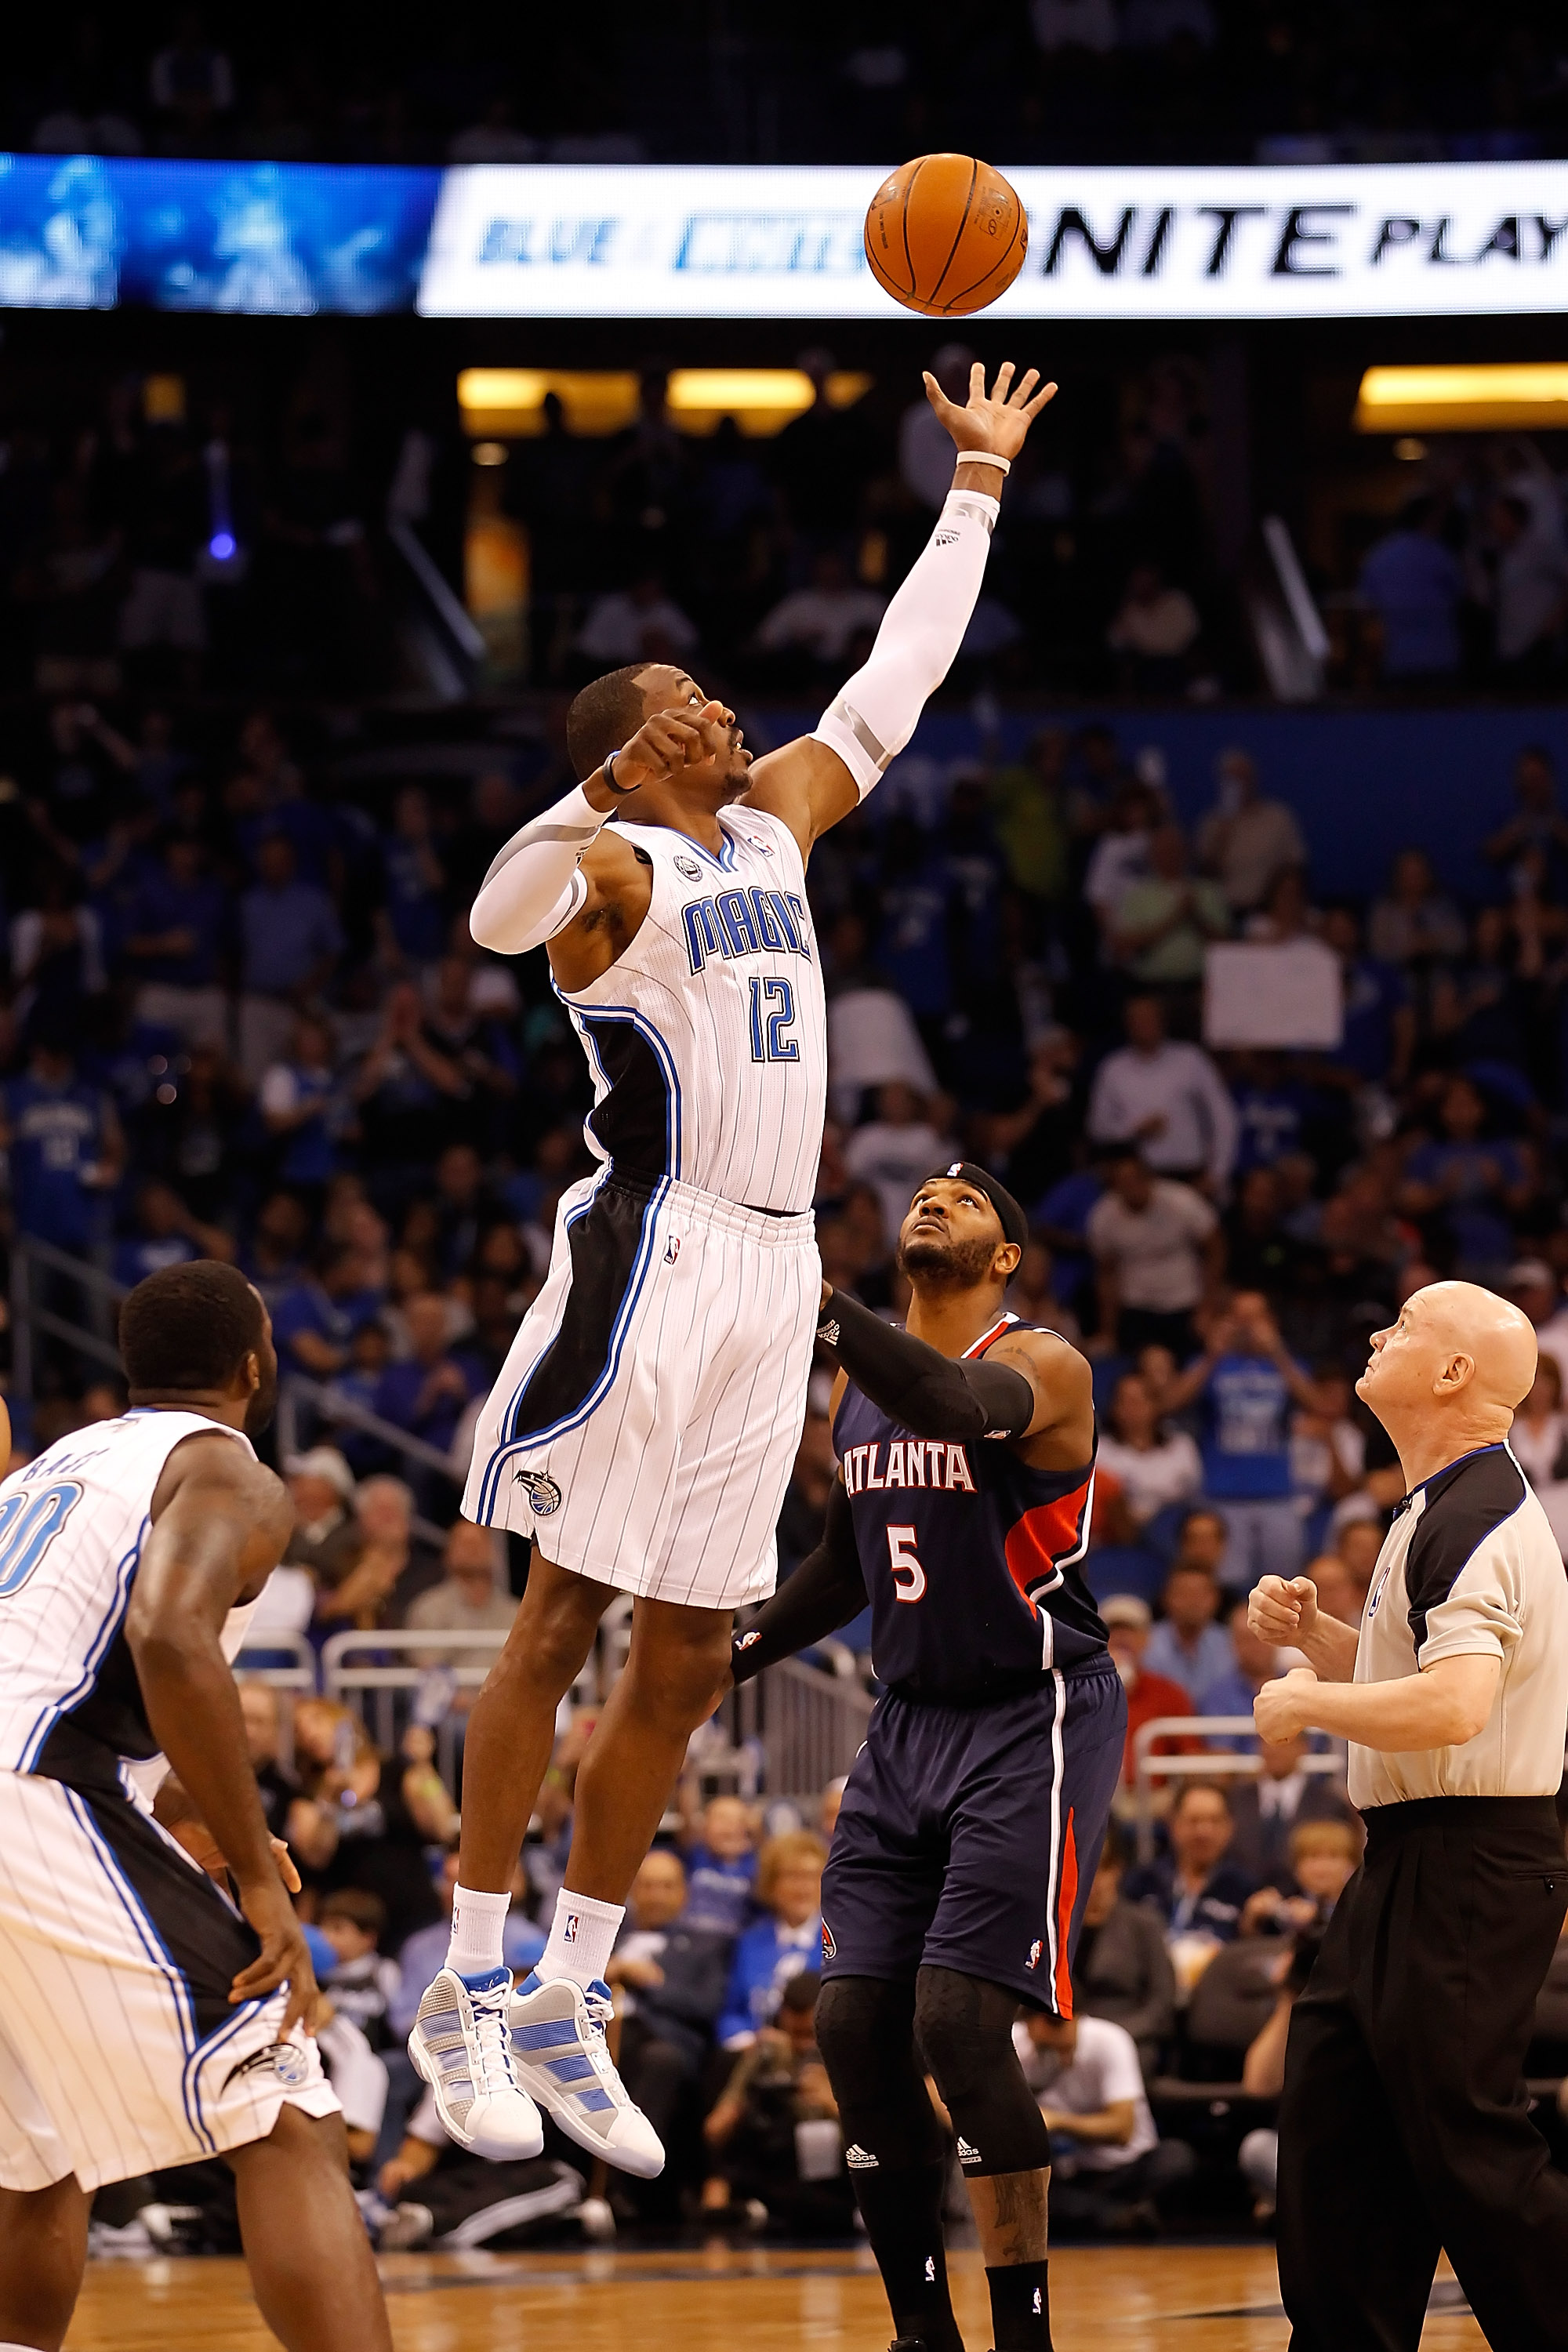 ORLANDO, FL - APRIL 26:  Dwight Howard #12 of the Orlando Magic wins the opening tip against the Atlanta Hawks during Game Five of the Eastern Conference Quarterfinals of the 2011 NBA Playoffs on April 26, 2011 at the Amway Arena in Orlando, Florida.  NOT